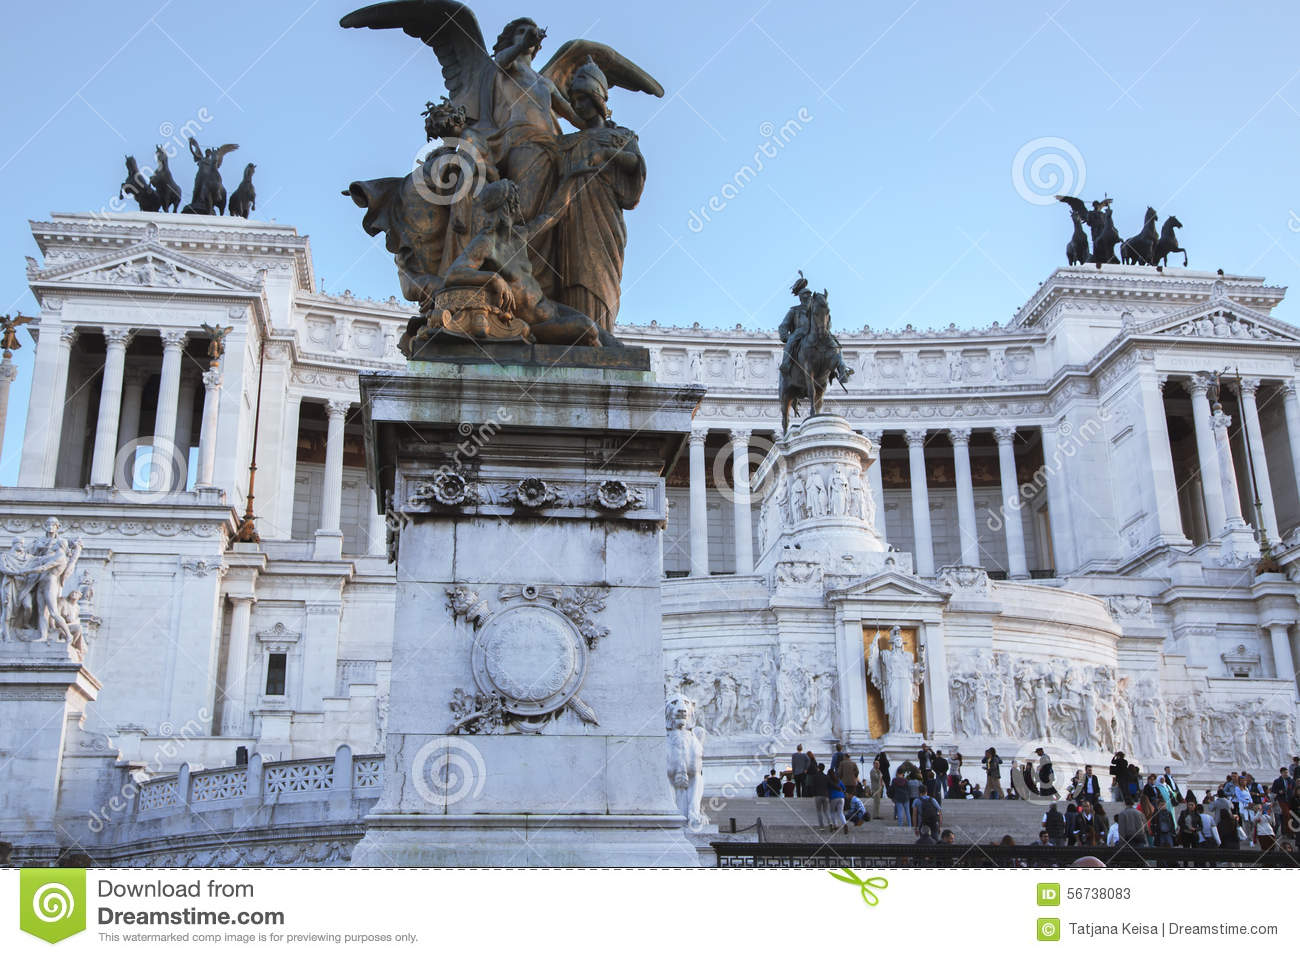 The monumento nazionale a vittorio emanuele ii editorial for Builders first